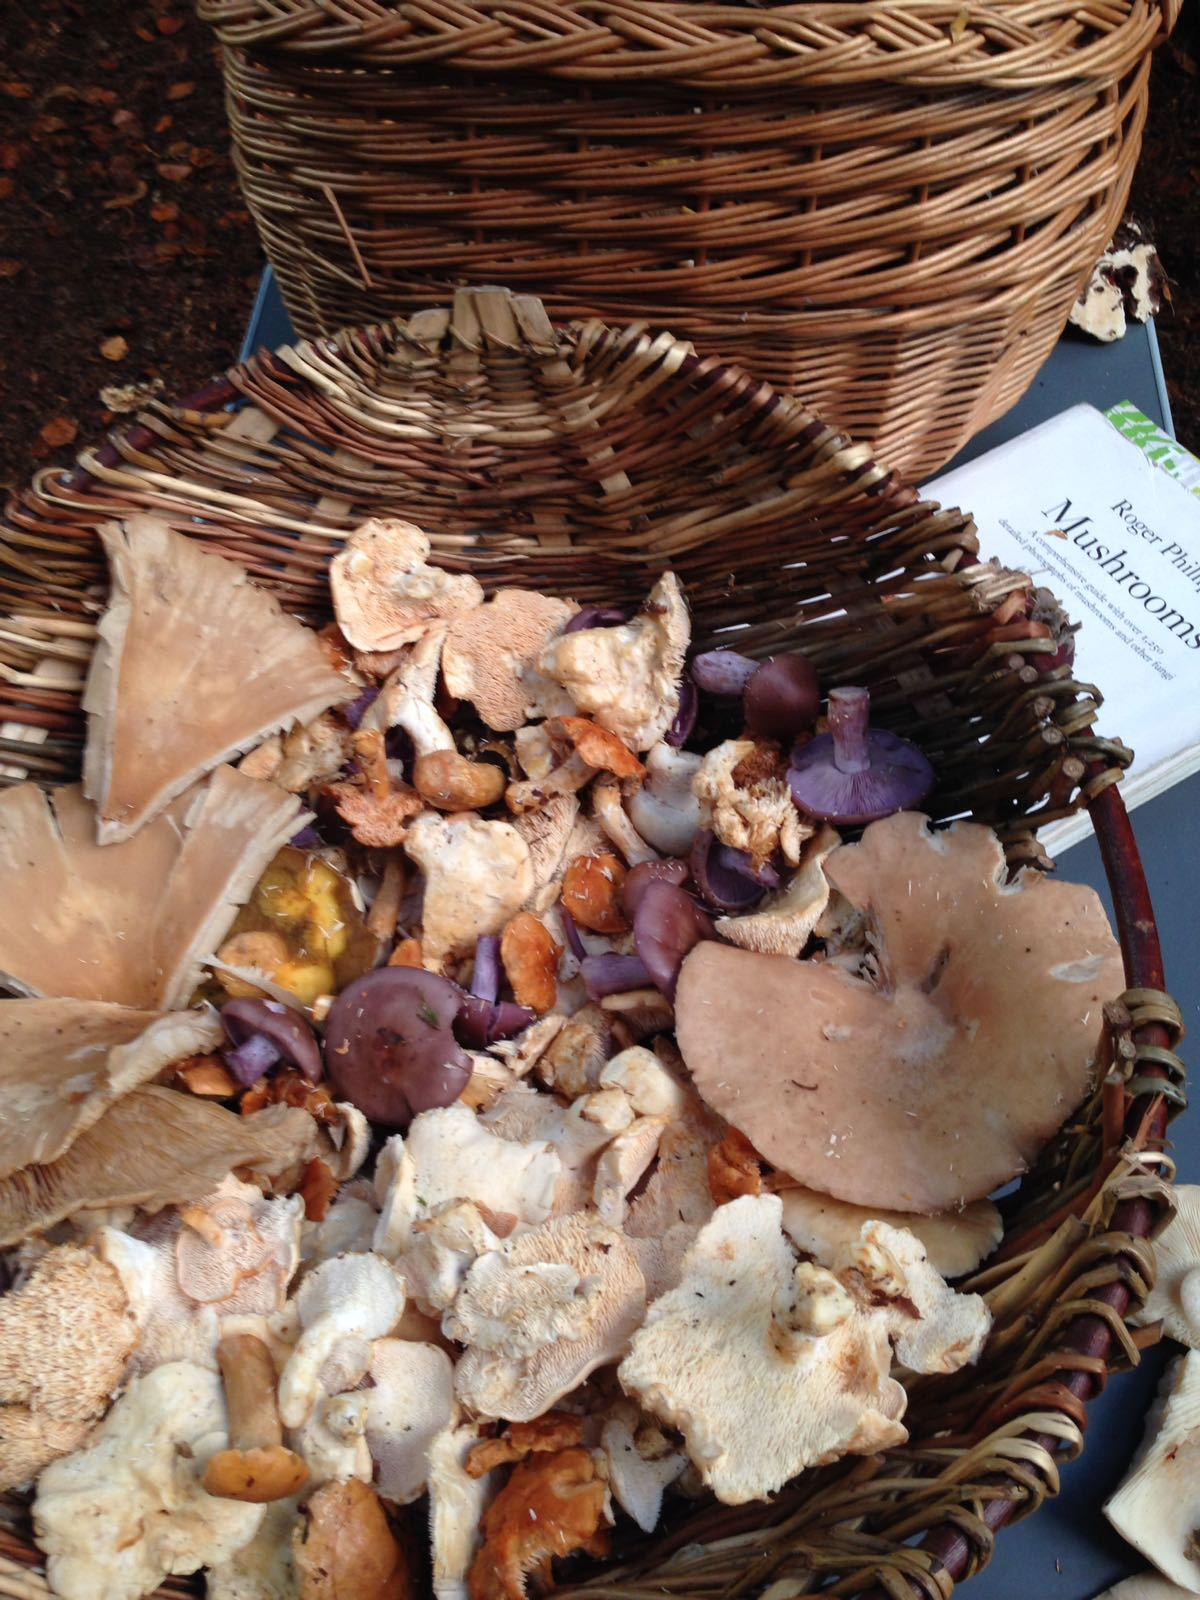 Cooking and foraging wild mushrooms in the forest ...